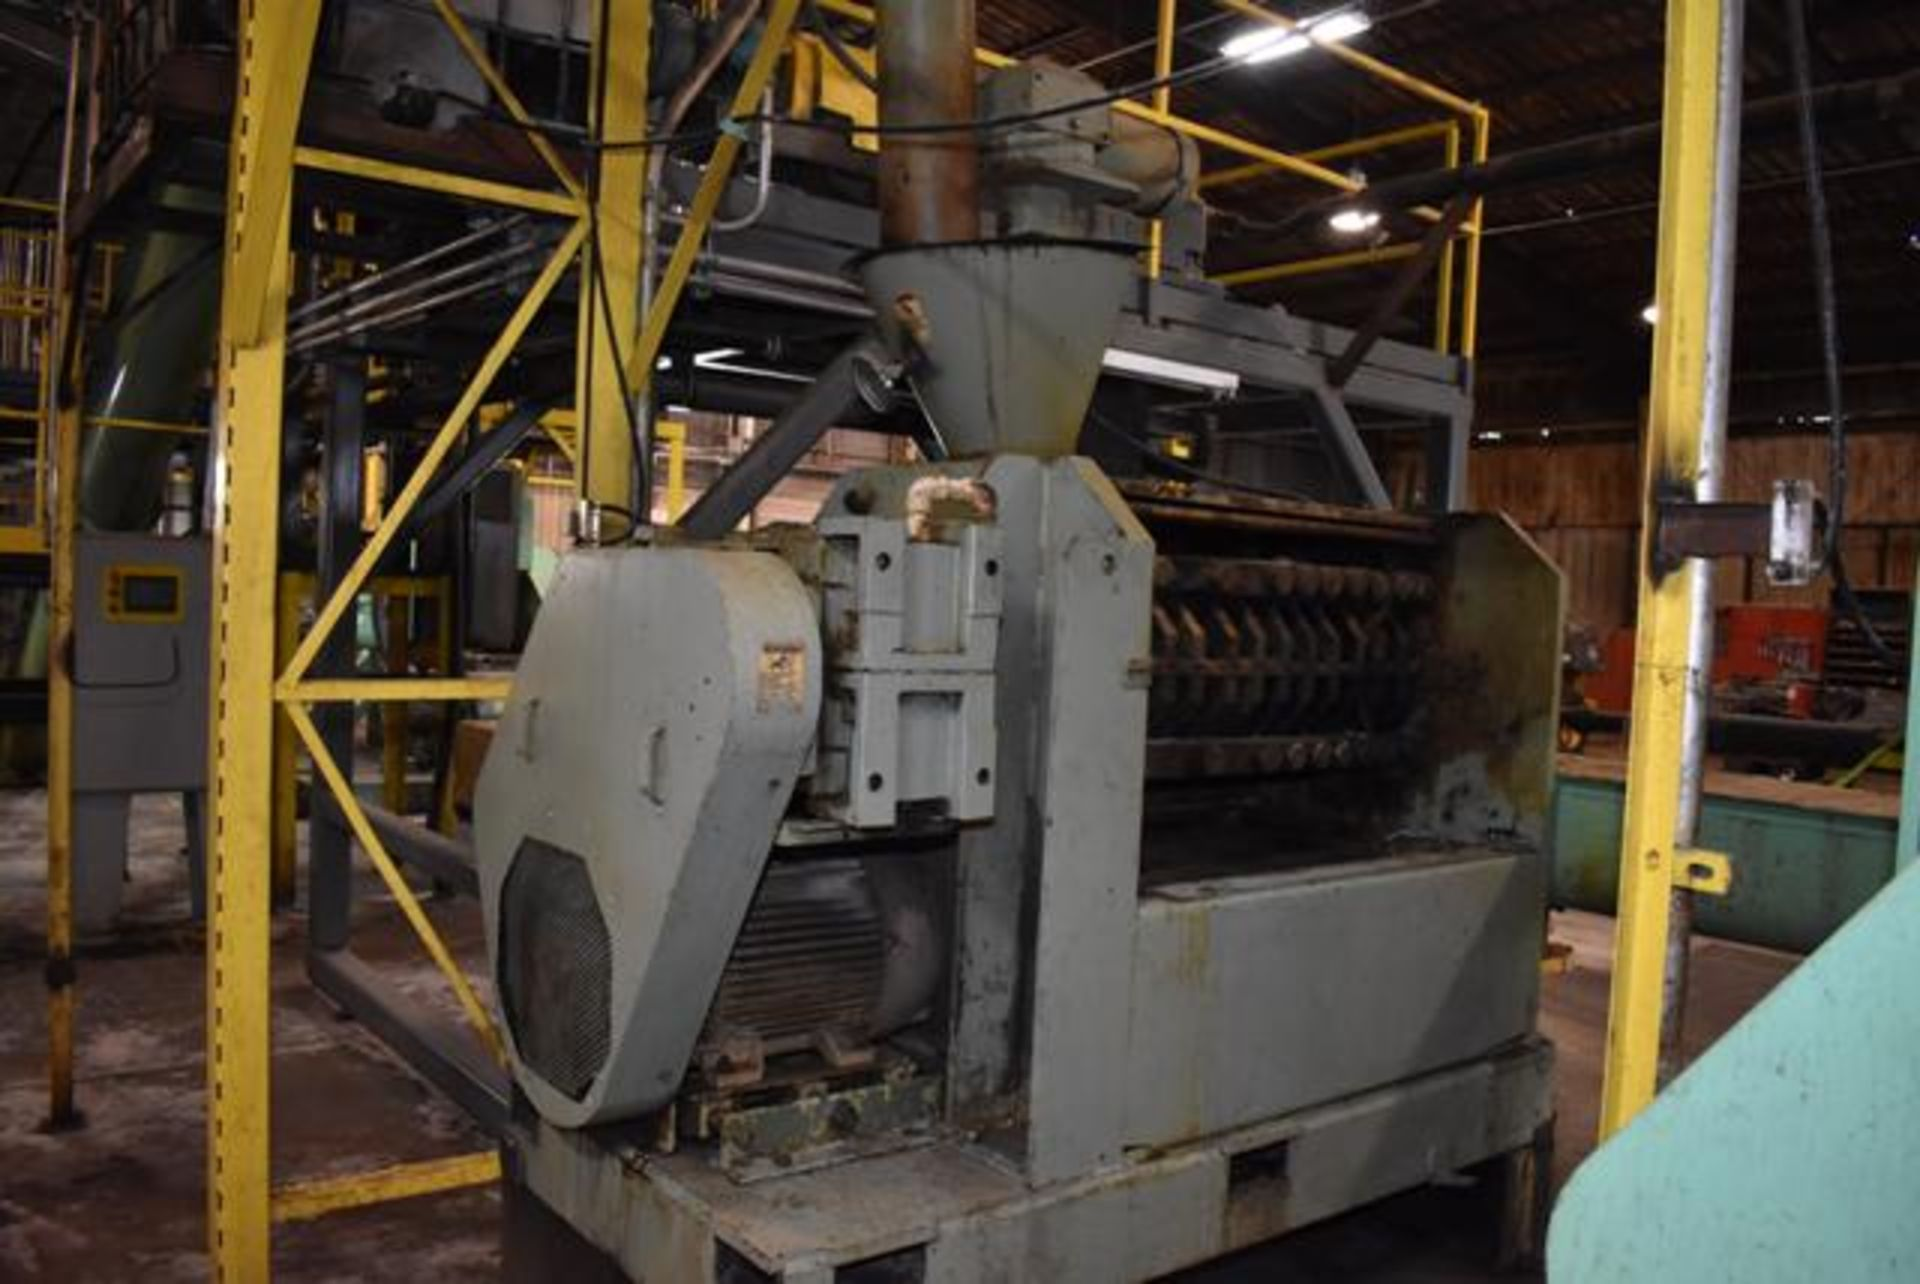 Lot 20 - Insta-Pro Model 4500 Press, Includes Feeder and Crammer, 50 HP Motor. LOADING FEE: $3000